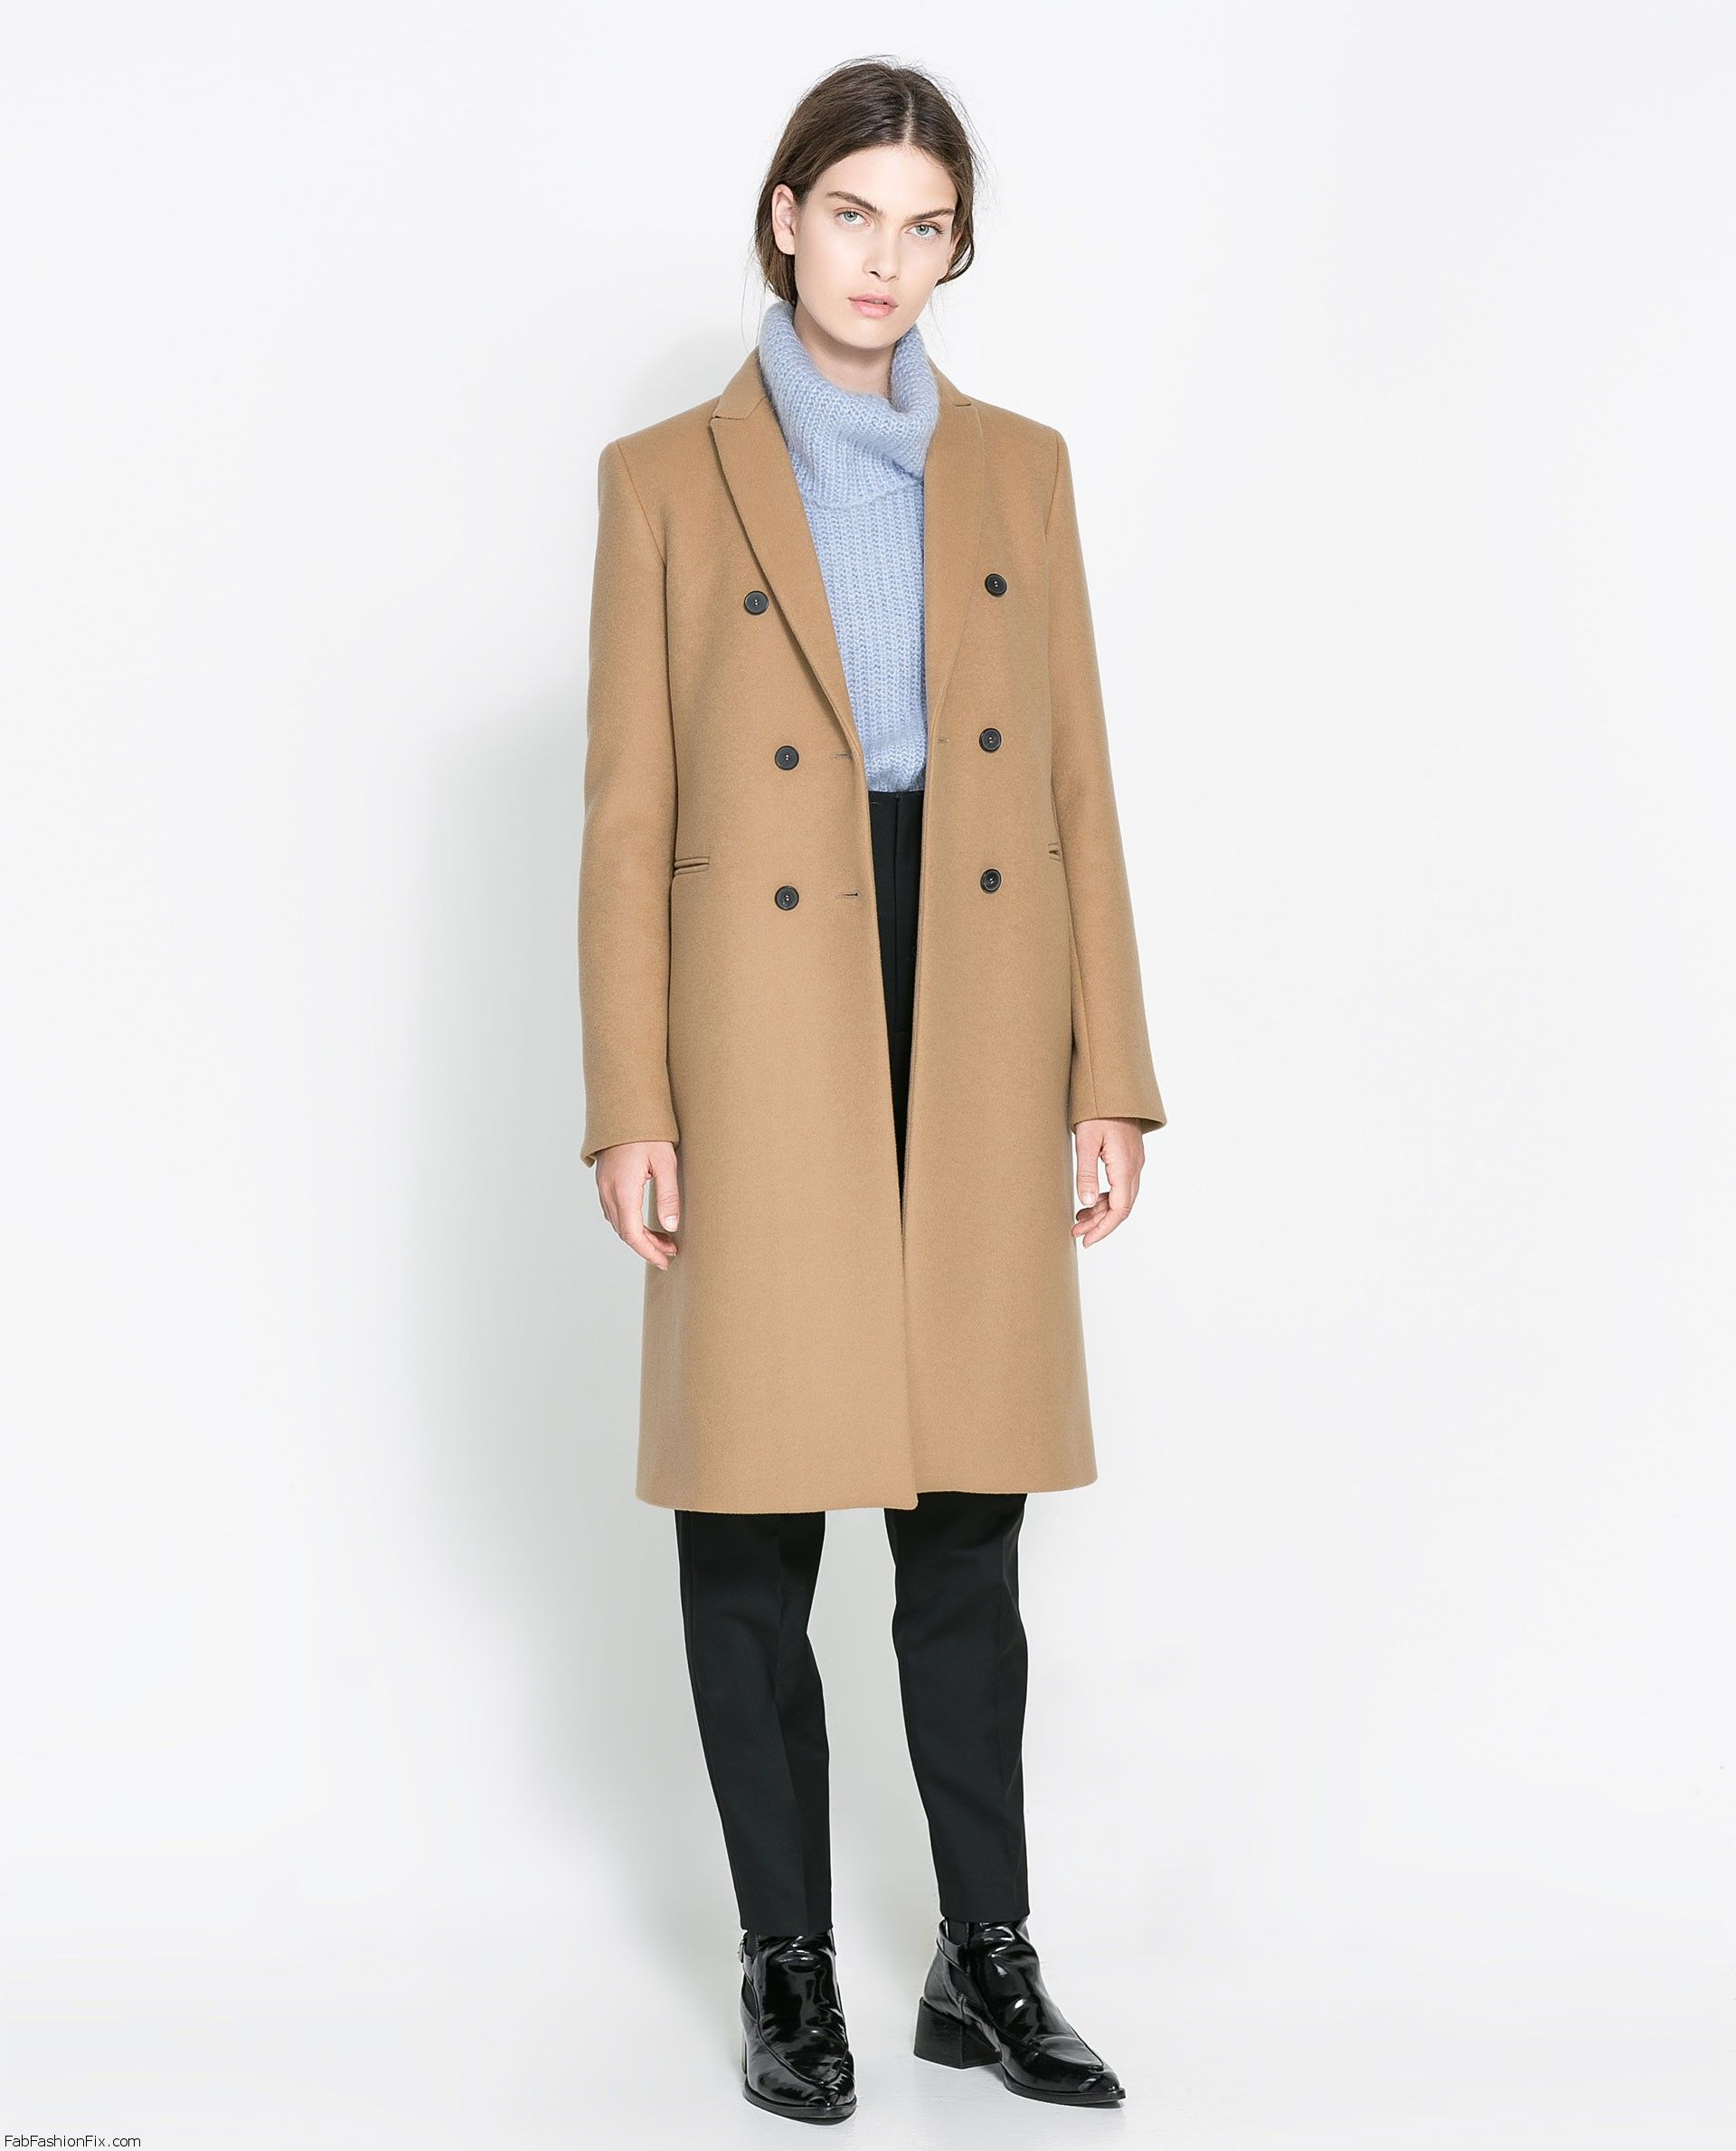 zara coats jackets for fall winter 2013 fab fashion fix #0: 82